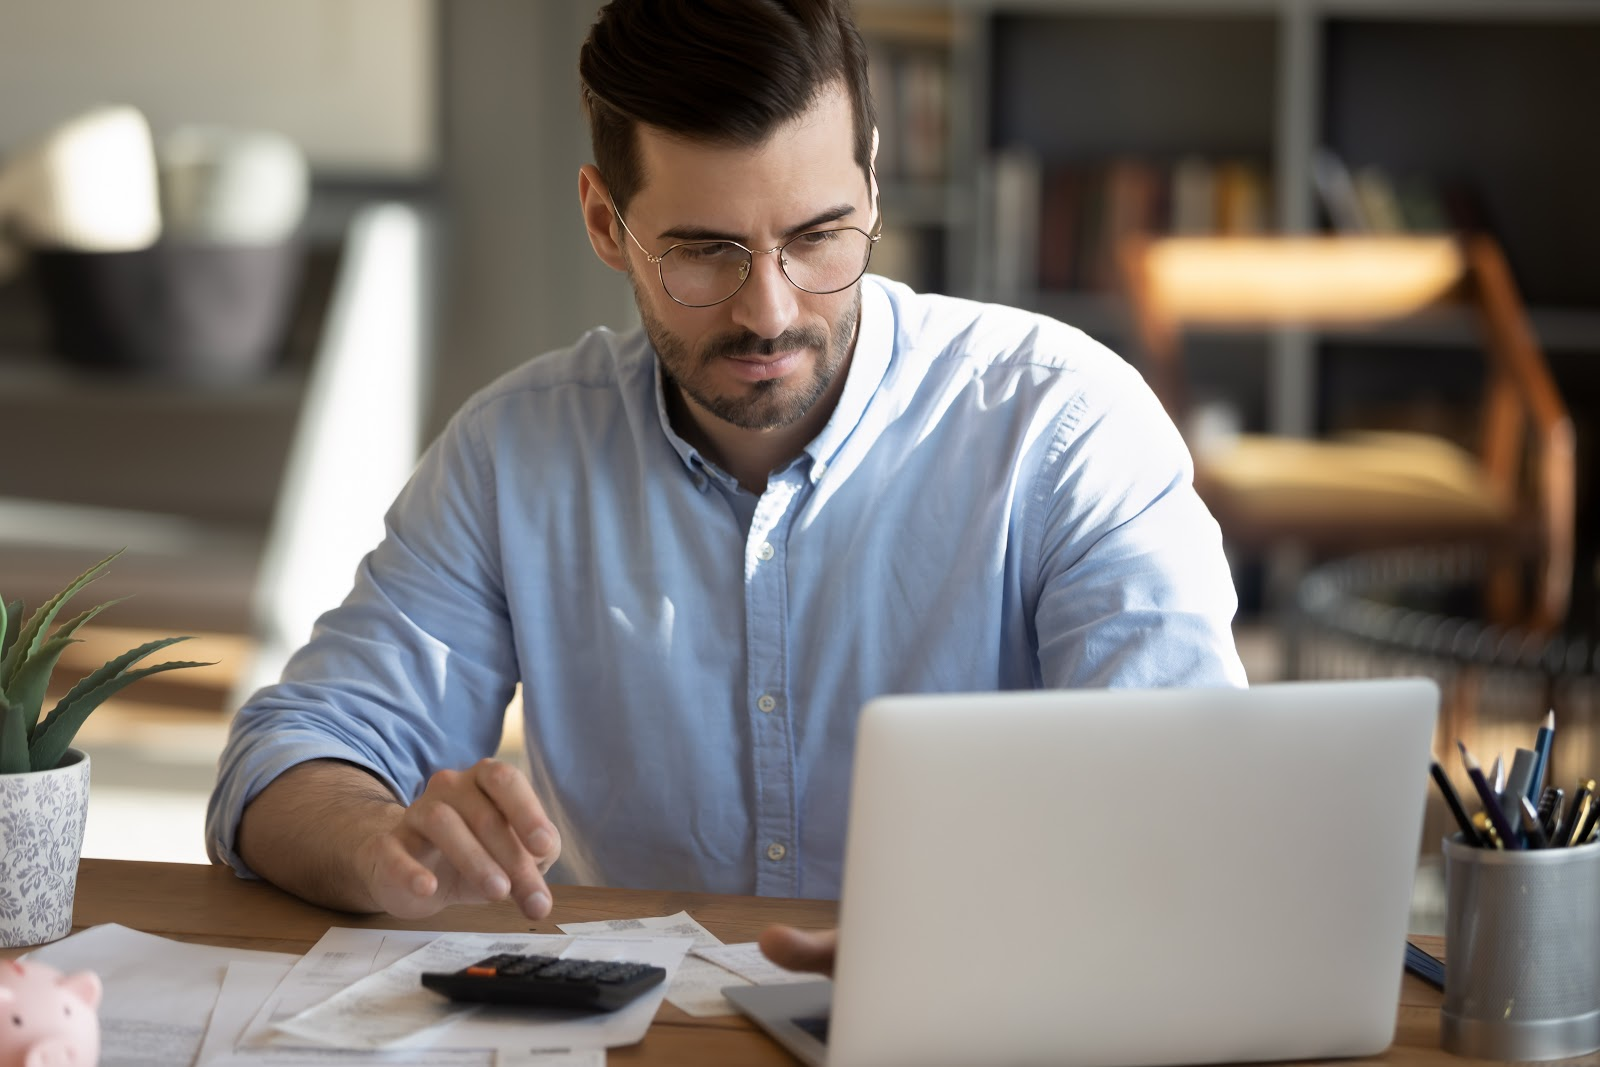 Focused young man at laptop working on financial matters